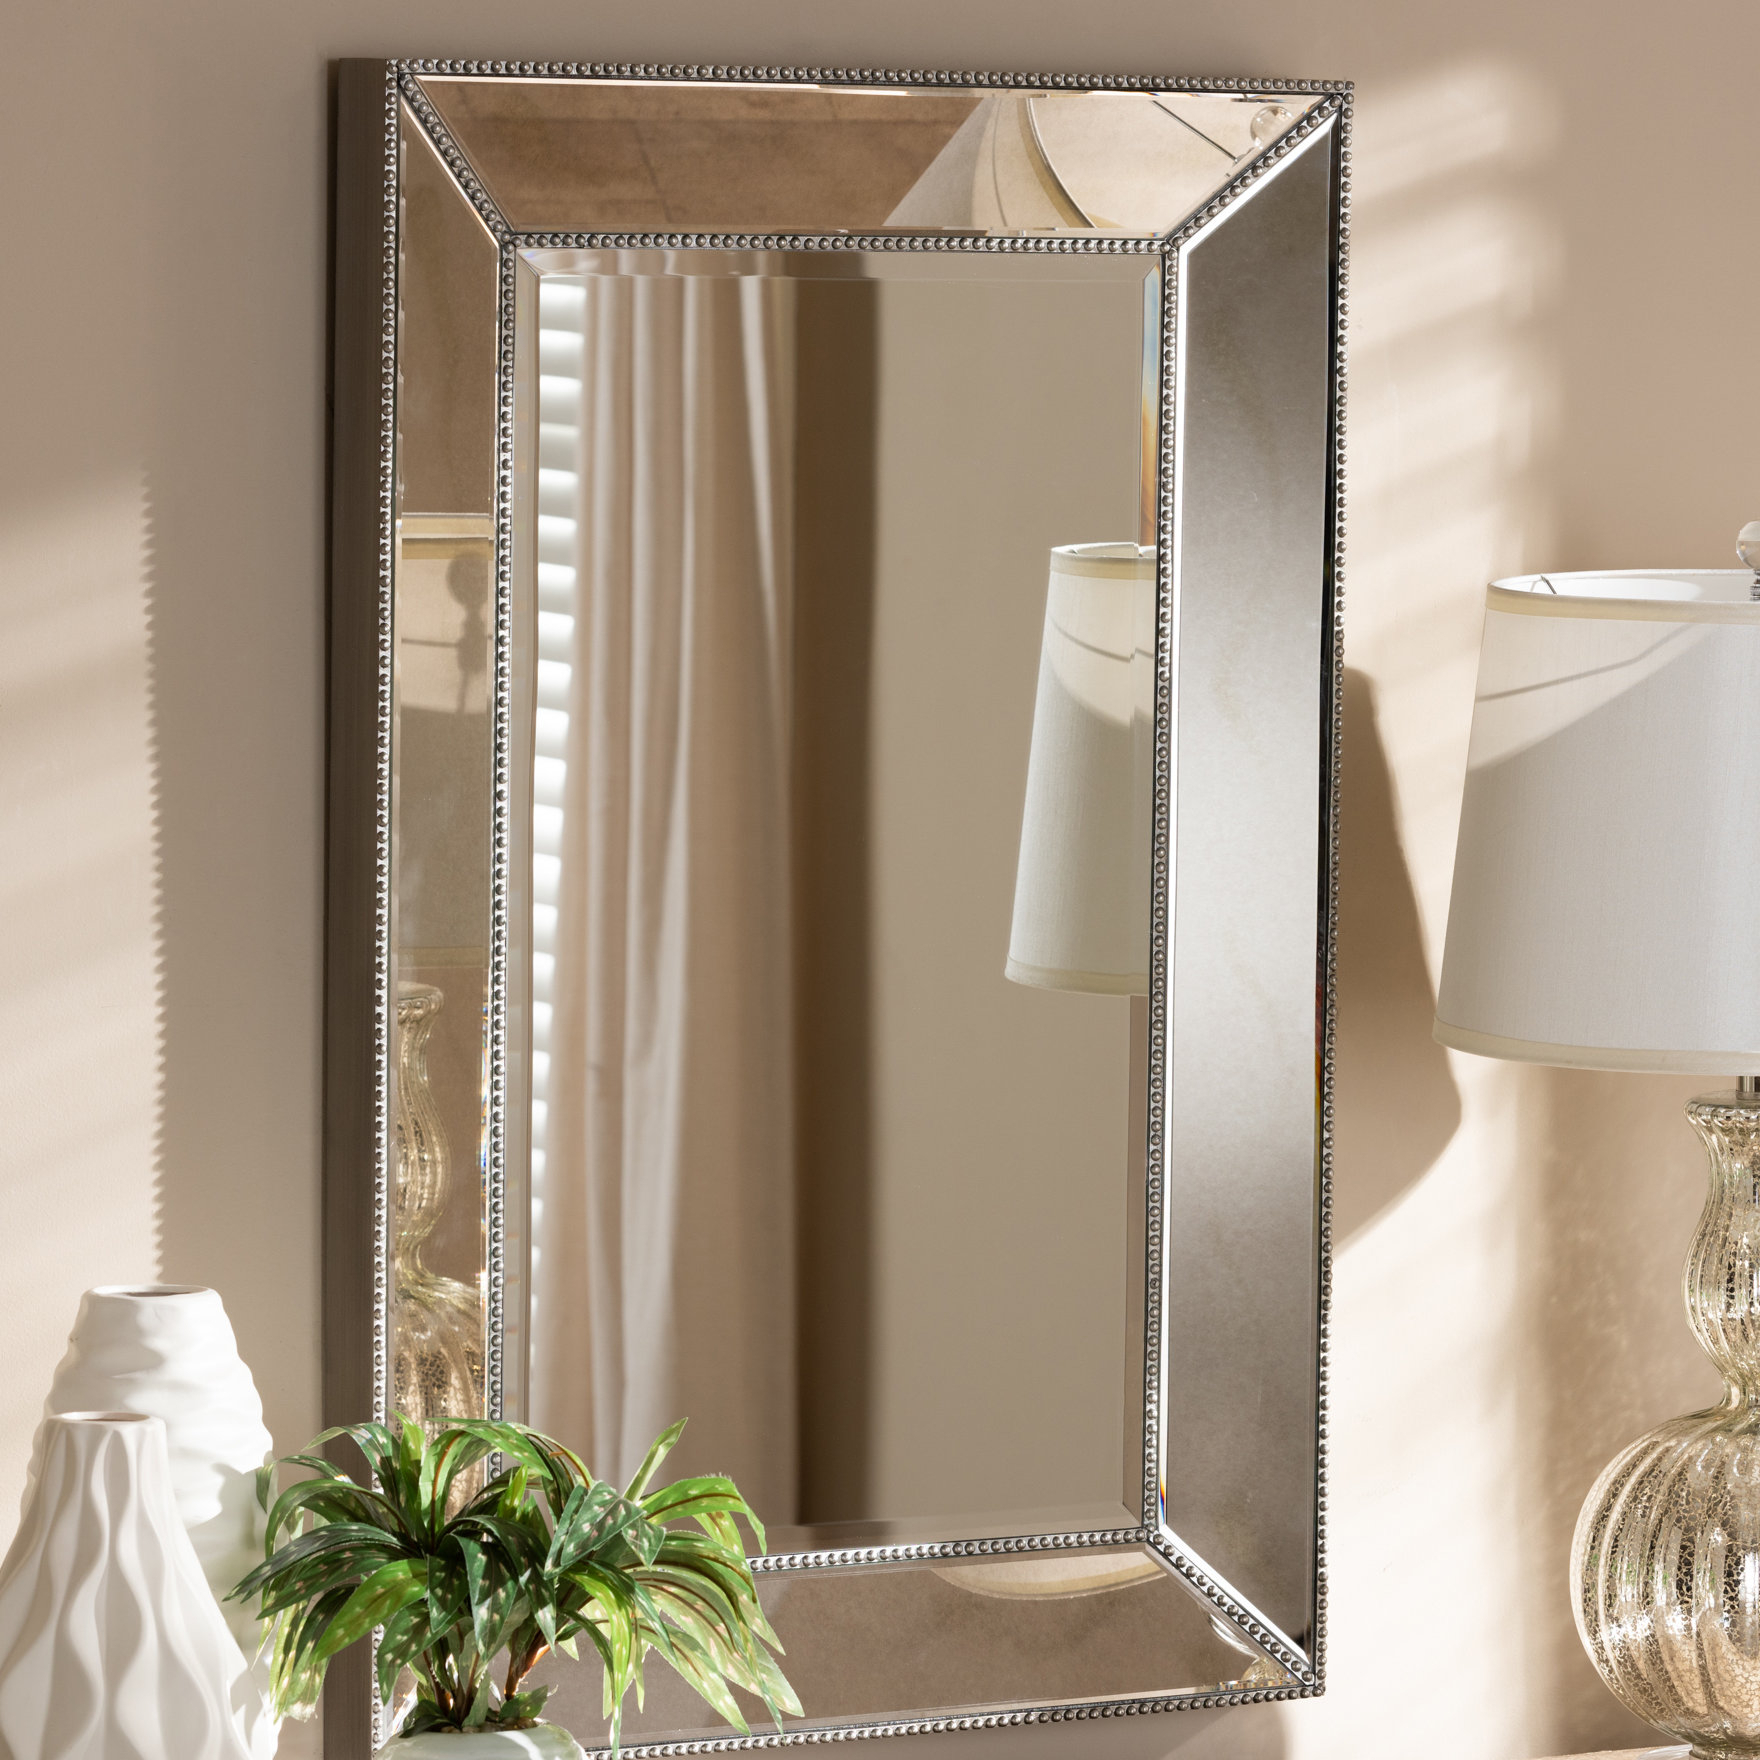 2019 Beveled Wall Mirrors Throughout Cady Beveled Wall Mirror (View 17 of 20)